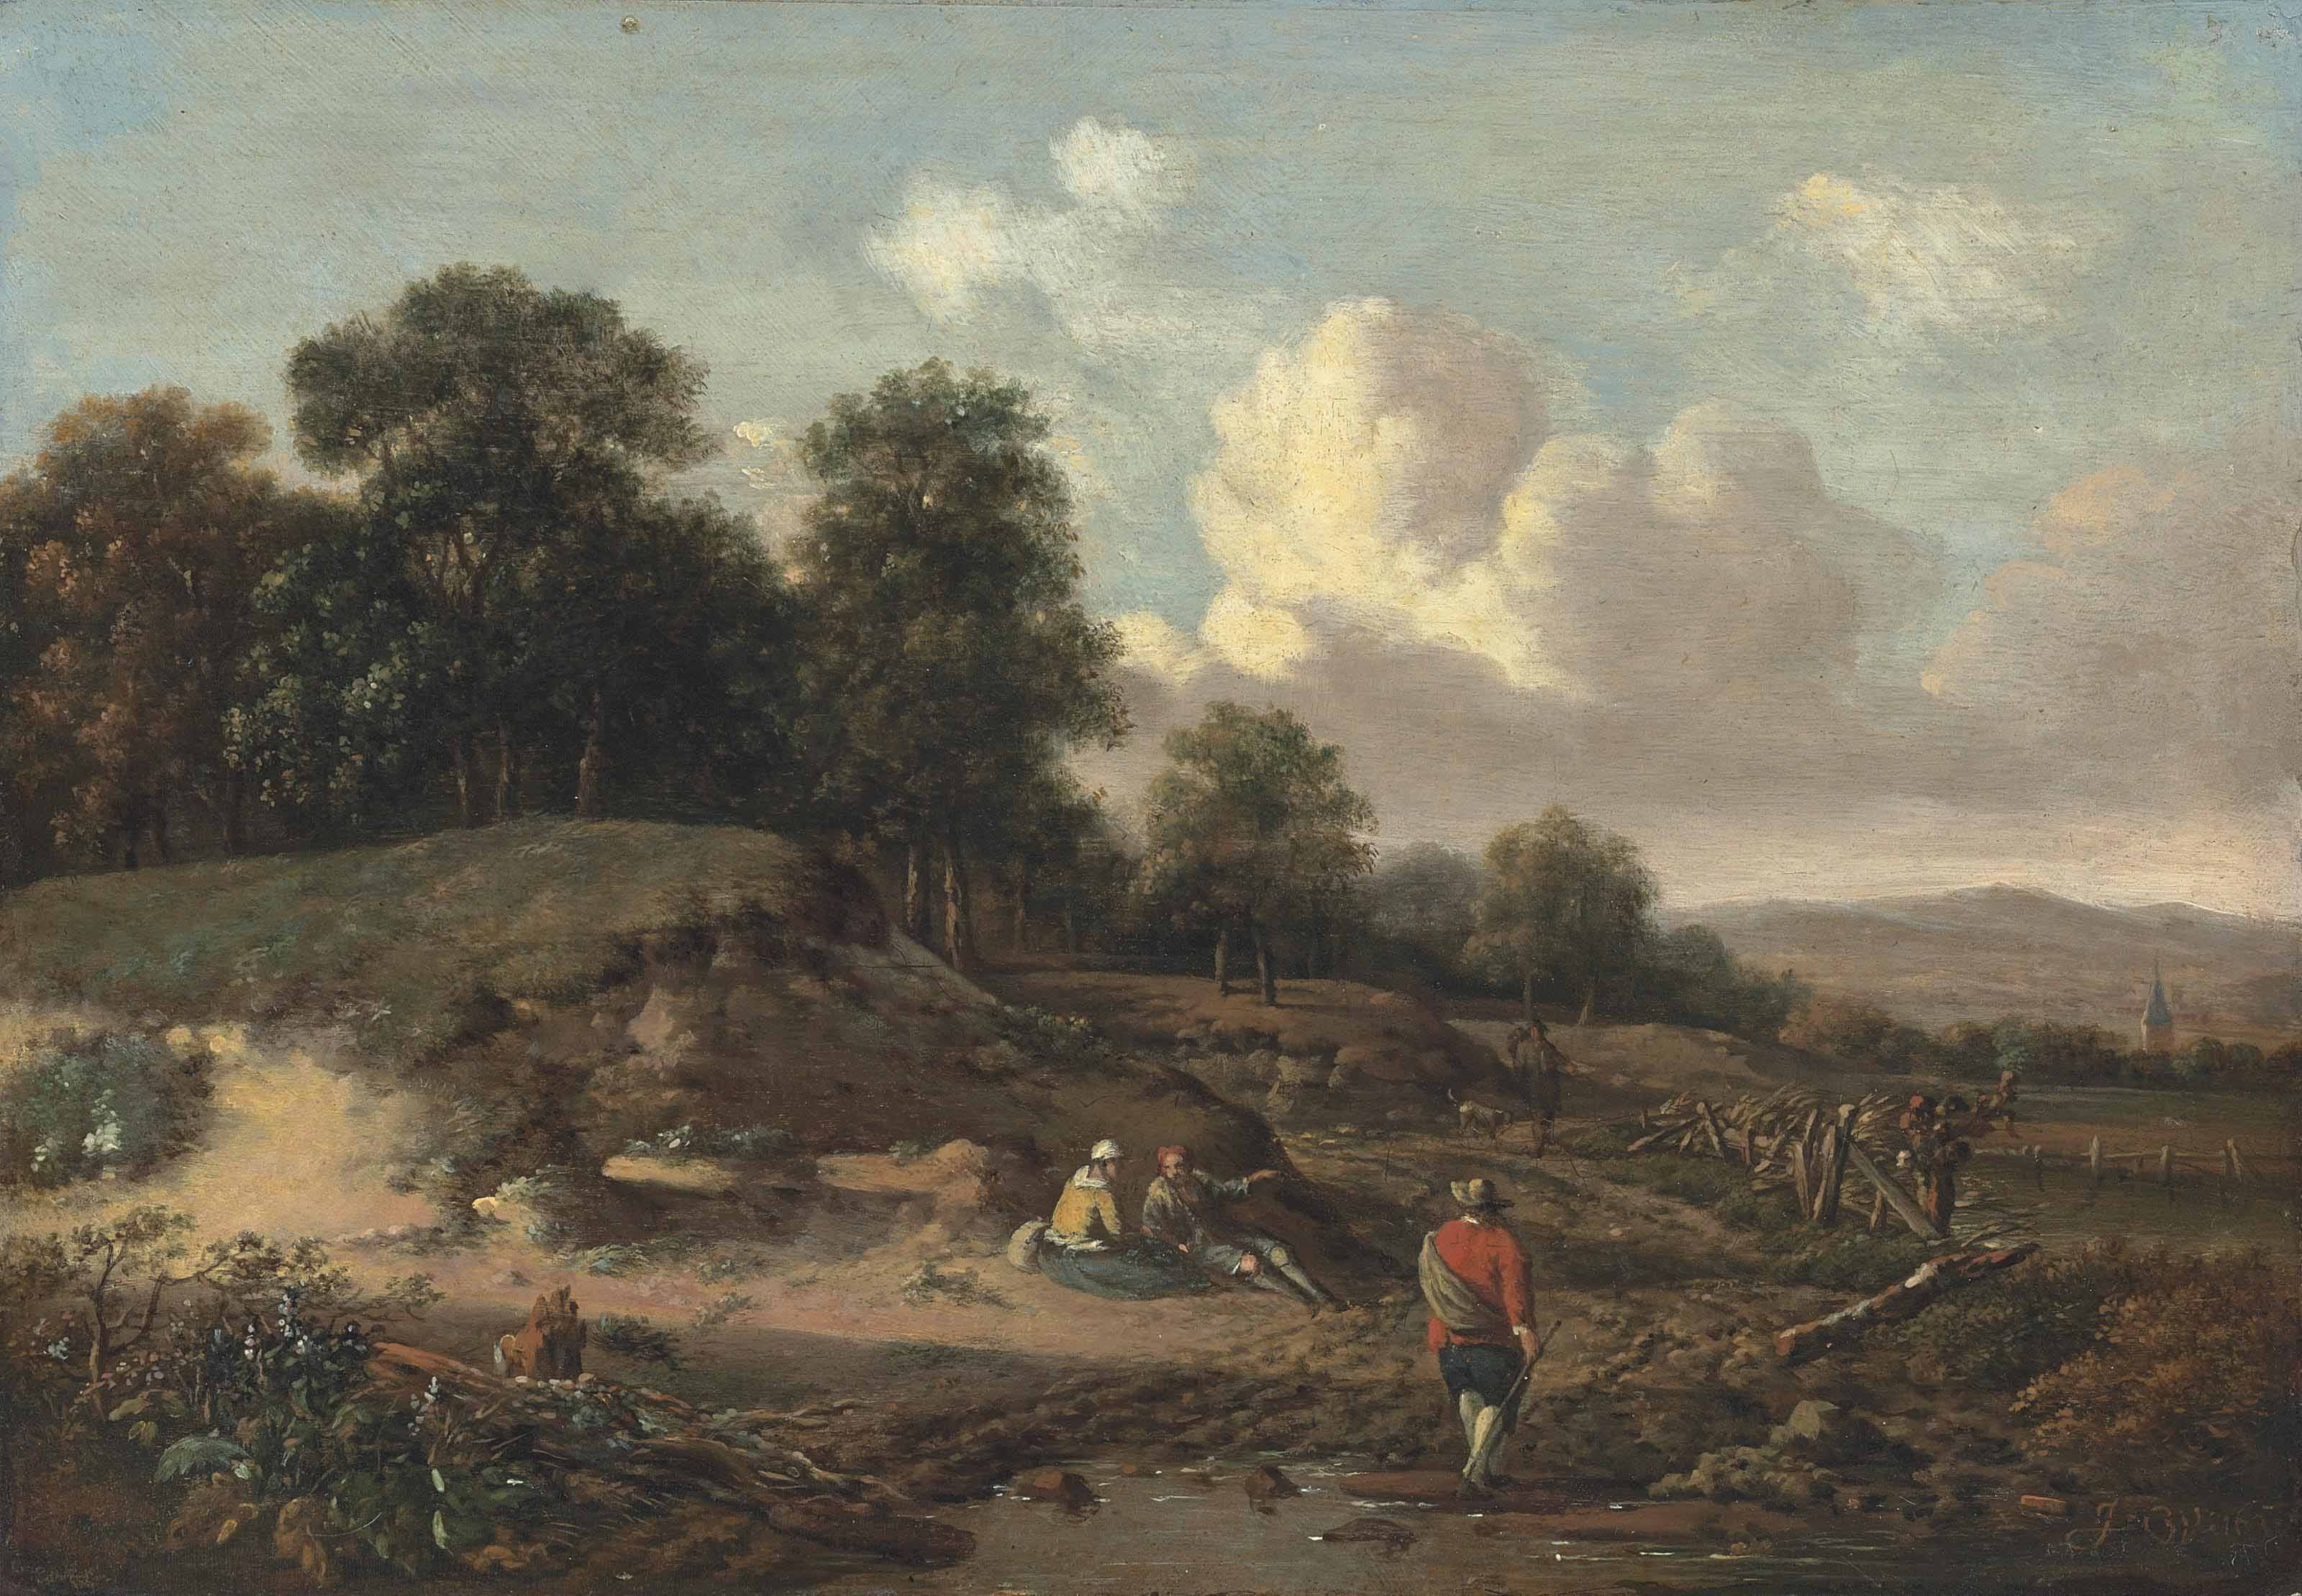 A wooded river landscape with figures resting by a sandbank, a traveller and a dog on a path, a church beyond